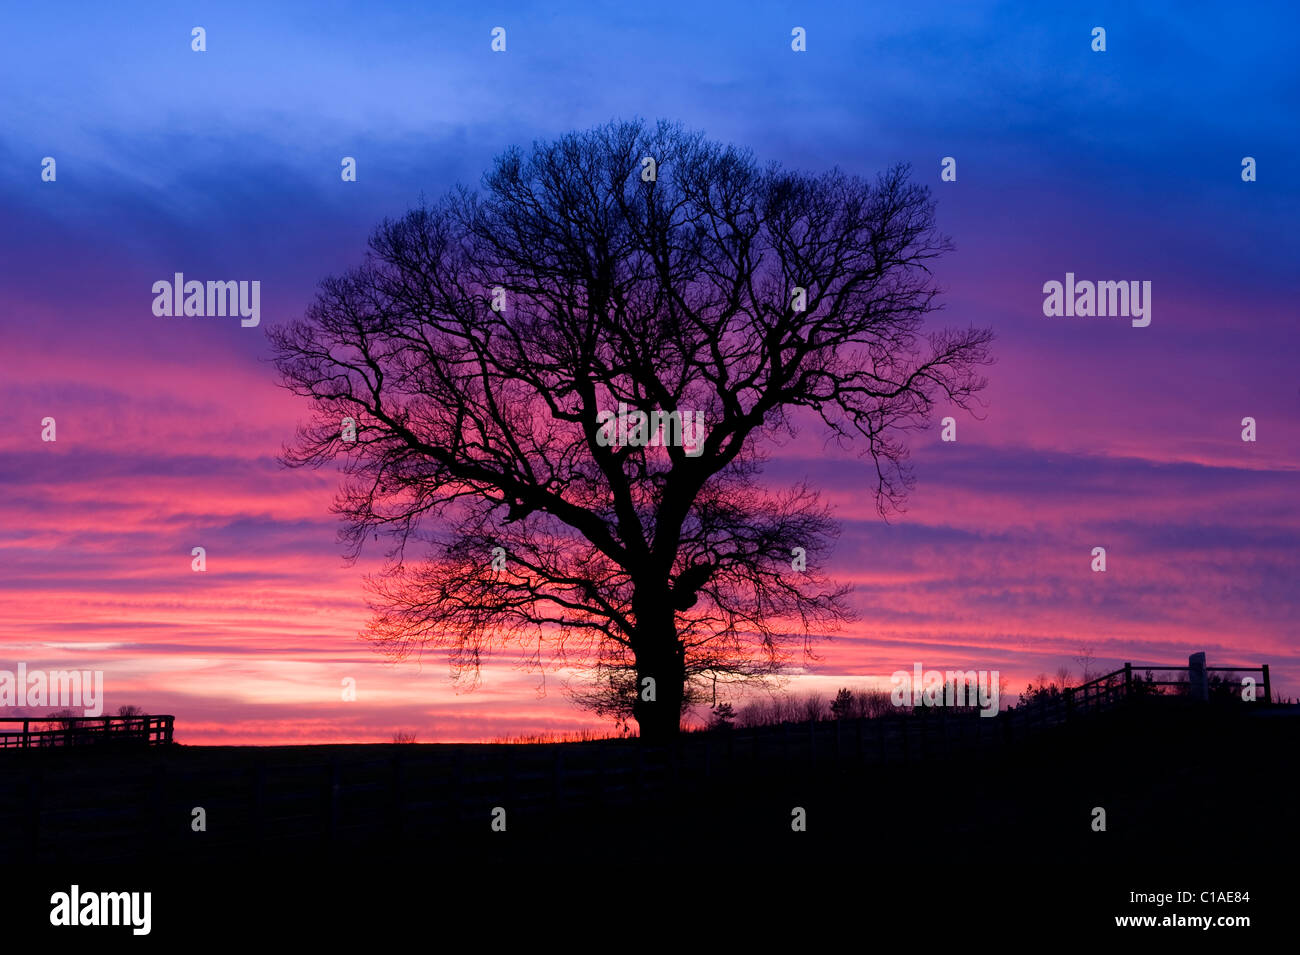 oak tree at sunset in countryside near Wetherby Yorkshire UK - Stock Image